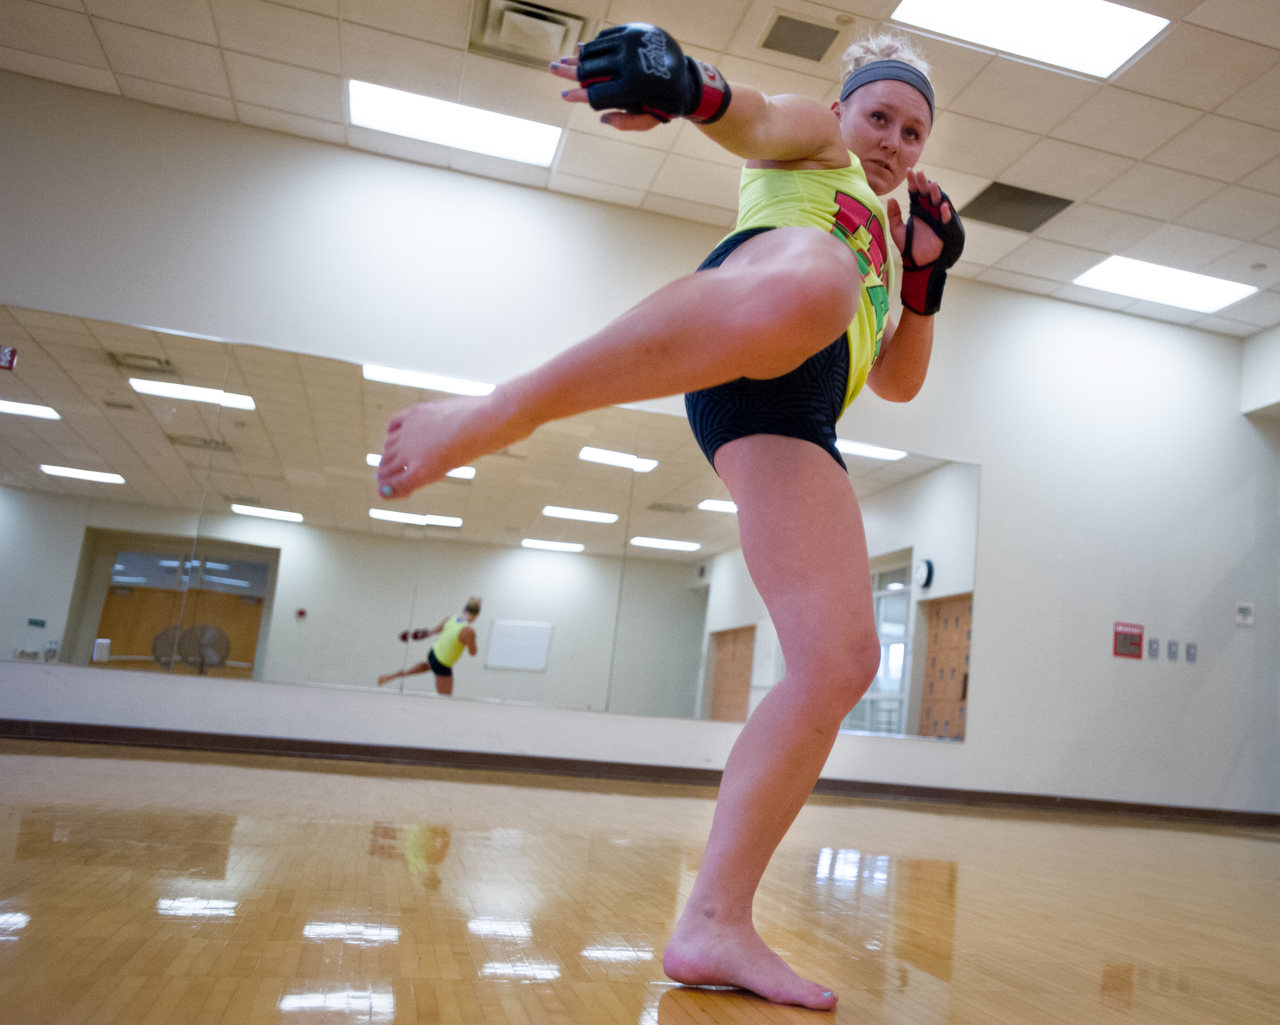 """Sheeley does a side kick while """"shadow boxing"""" during her training session at the Ping Center on September 9, 2015, in Athens, Ohio. """"The first time I got kicked in the face in practice, another female fighter kicked my nose and I got tears in my eyes but I got back up. After that I learned to start using the bruises as my trophies,"""" says Sheeley. (©2015 Sarah Stier)"""